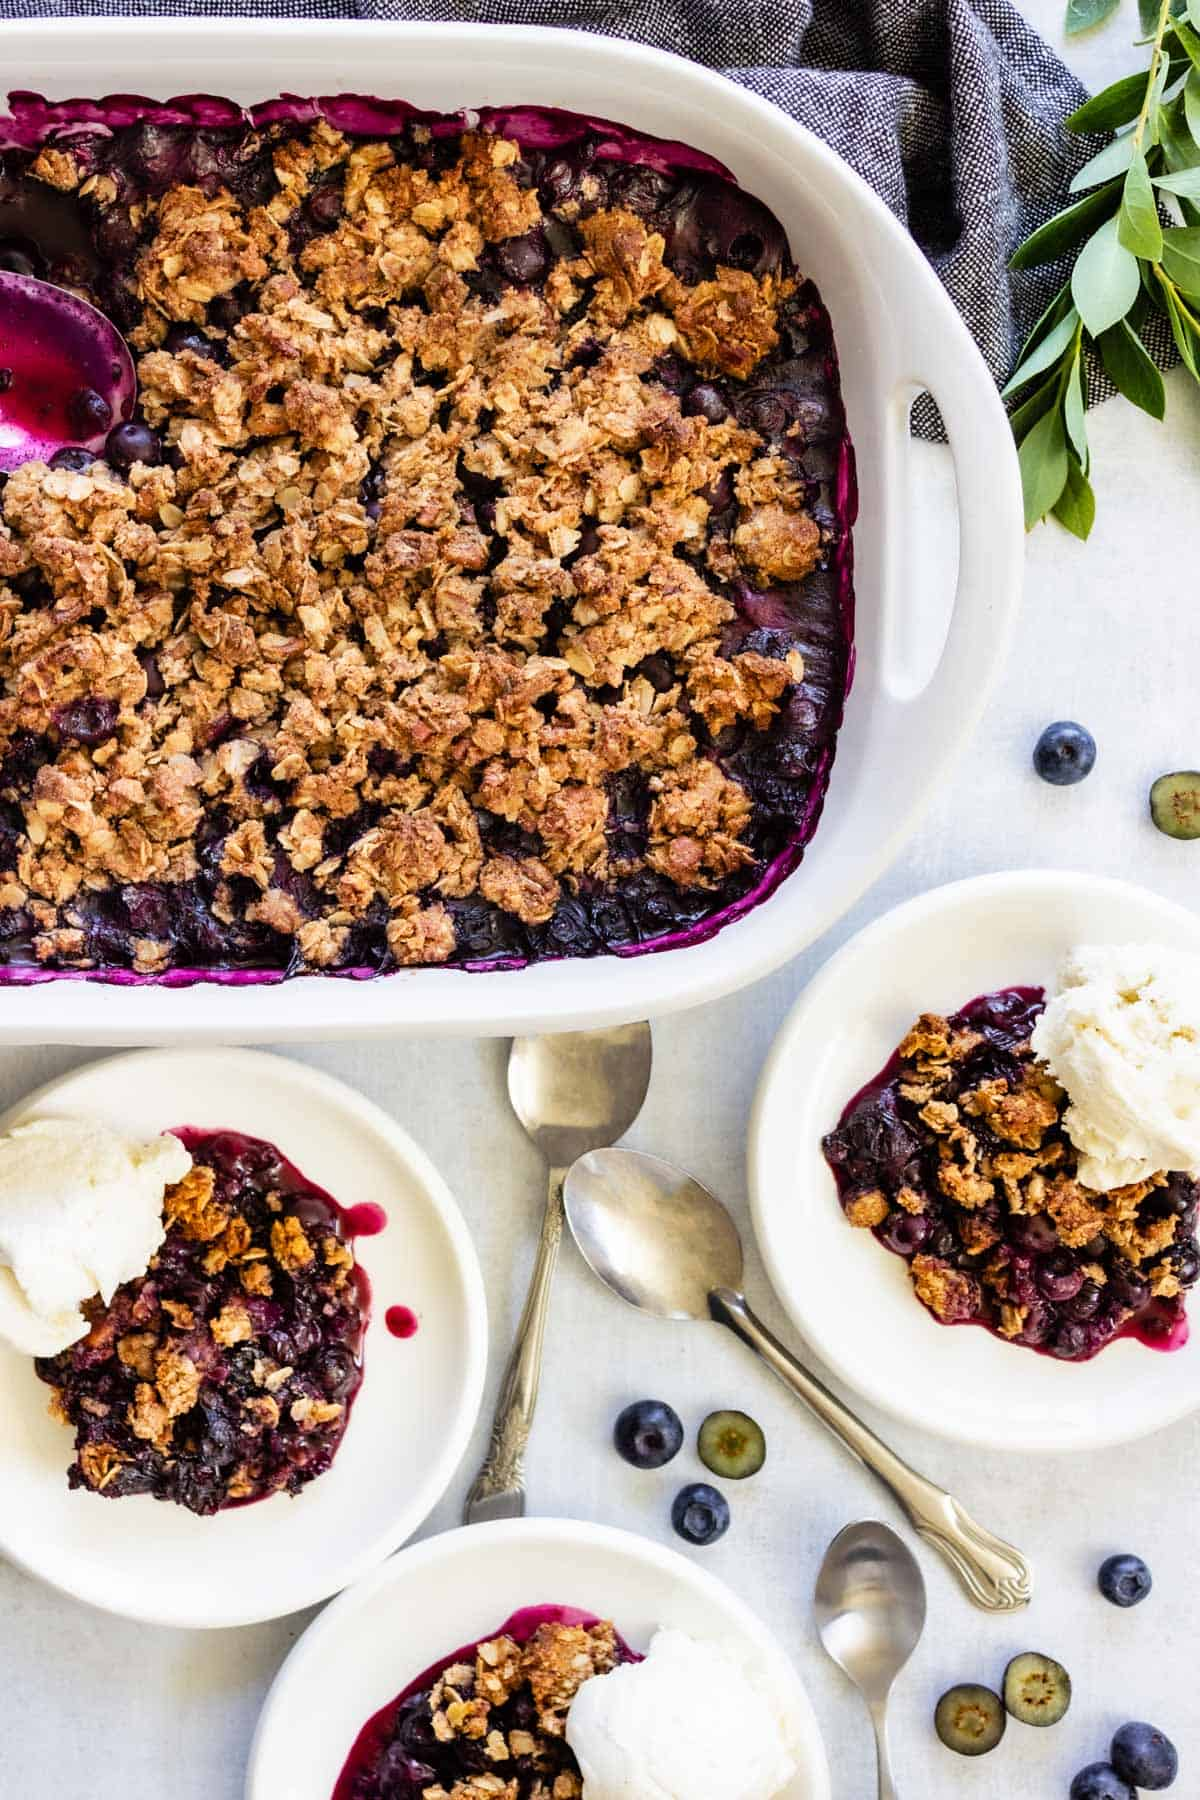 Three plates of blueberry crisp are served with a scoop of vanilla ice cream. Some fresh blueberries and several spoons are scattered next to them.